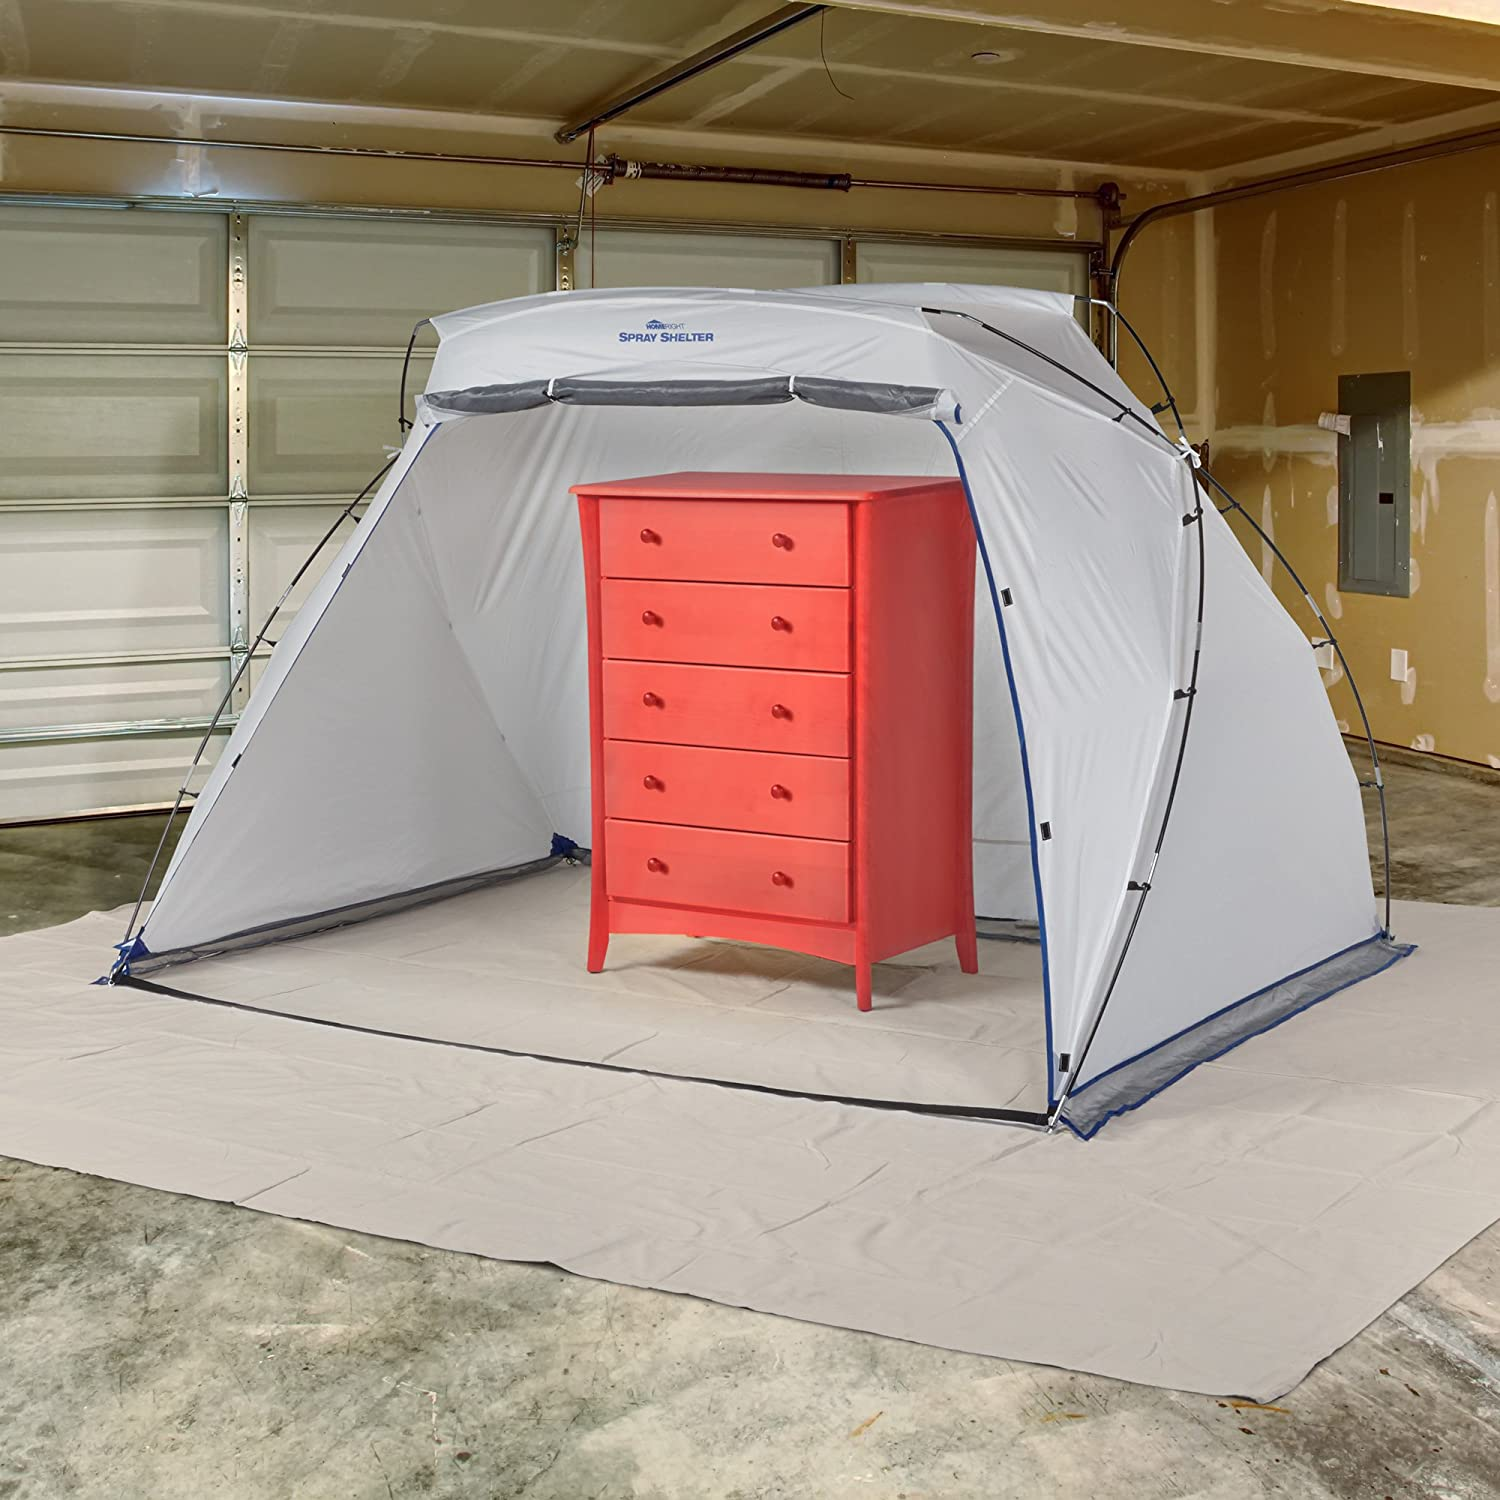 Amazoncom Homeright Large Spray Shelter C900038 Portable Paint